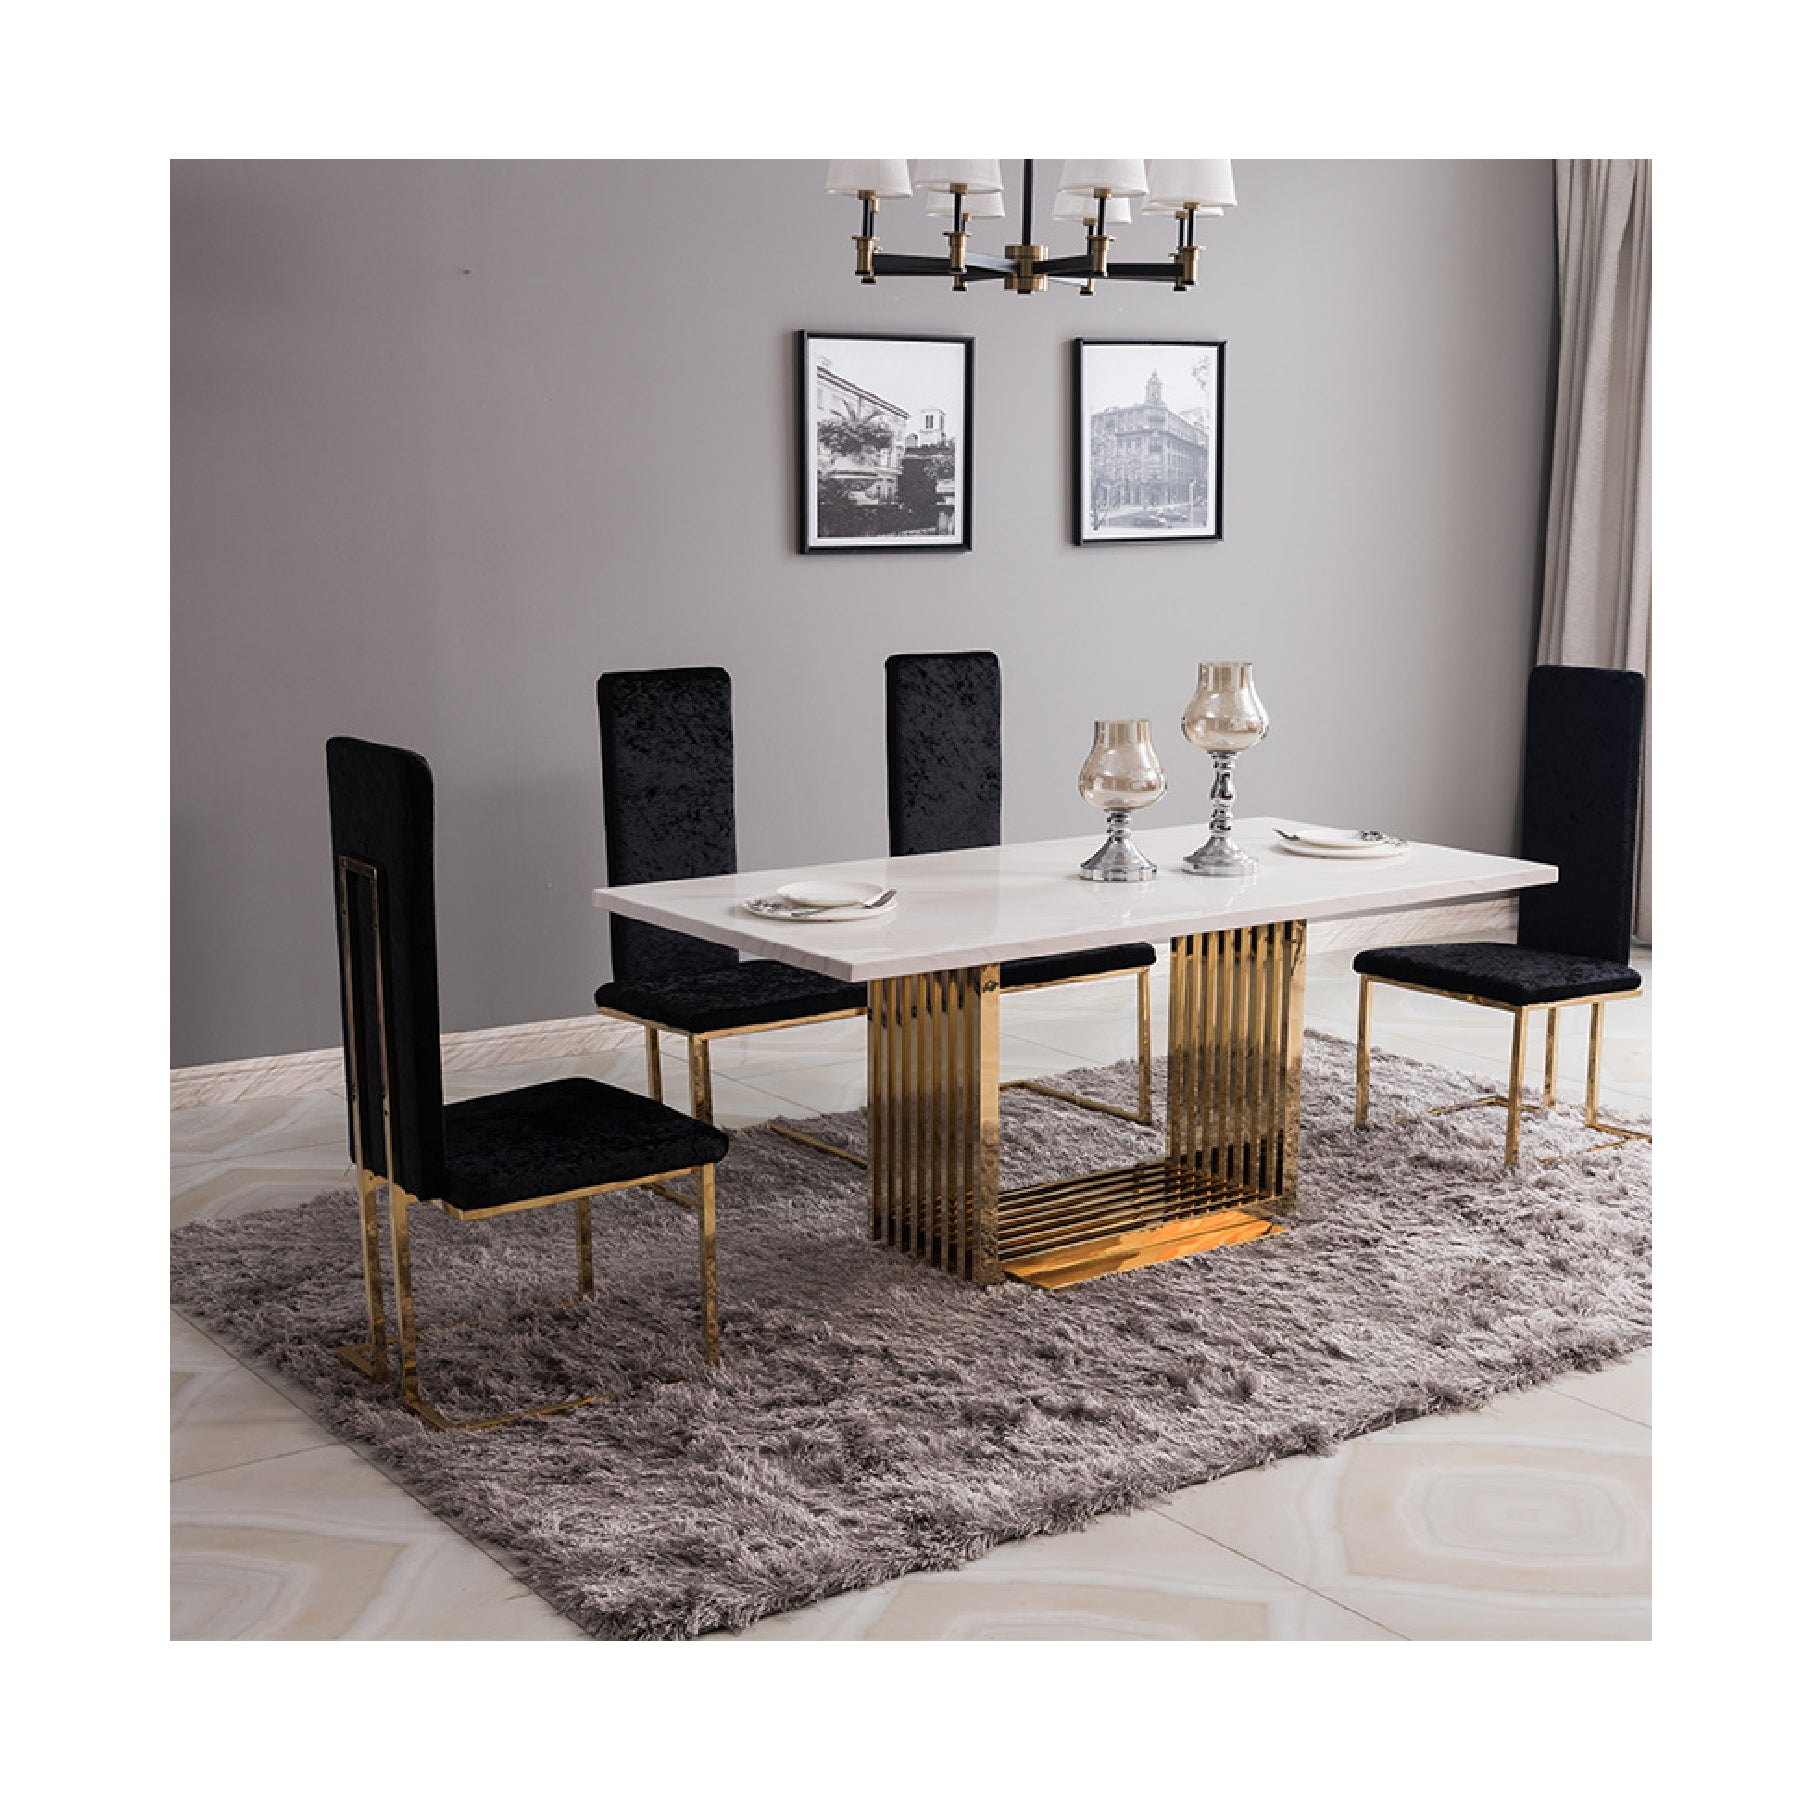 Marble Table MHF005 Black Set - mhomefurniture